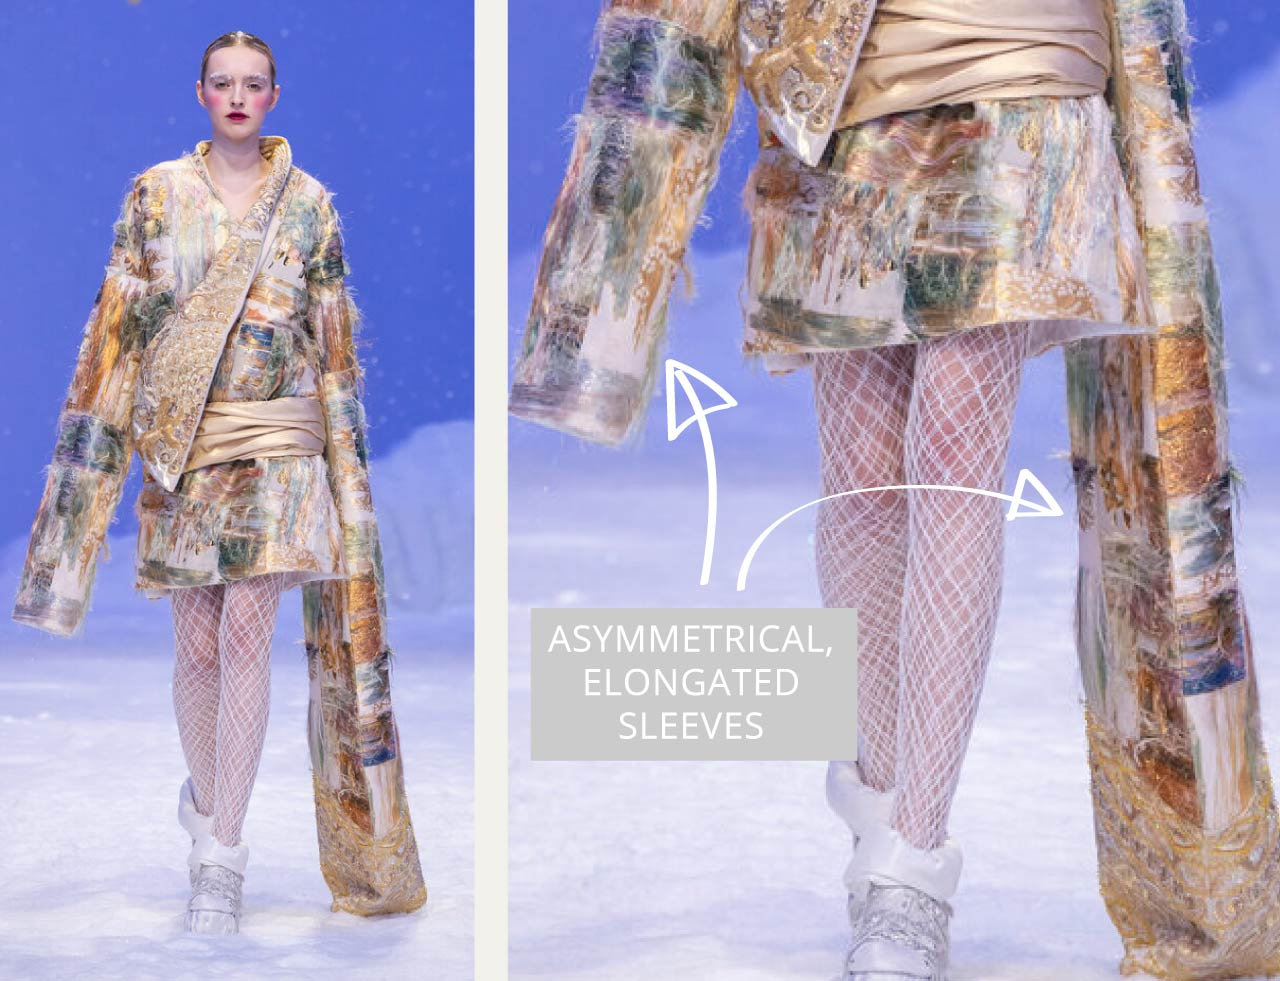 Reverse Textiles at Guo Pei Haute Couture | The Cutting Class. Asymmetrical, elongated sleeves. SS20 Haute Couture.